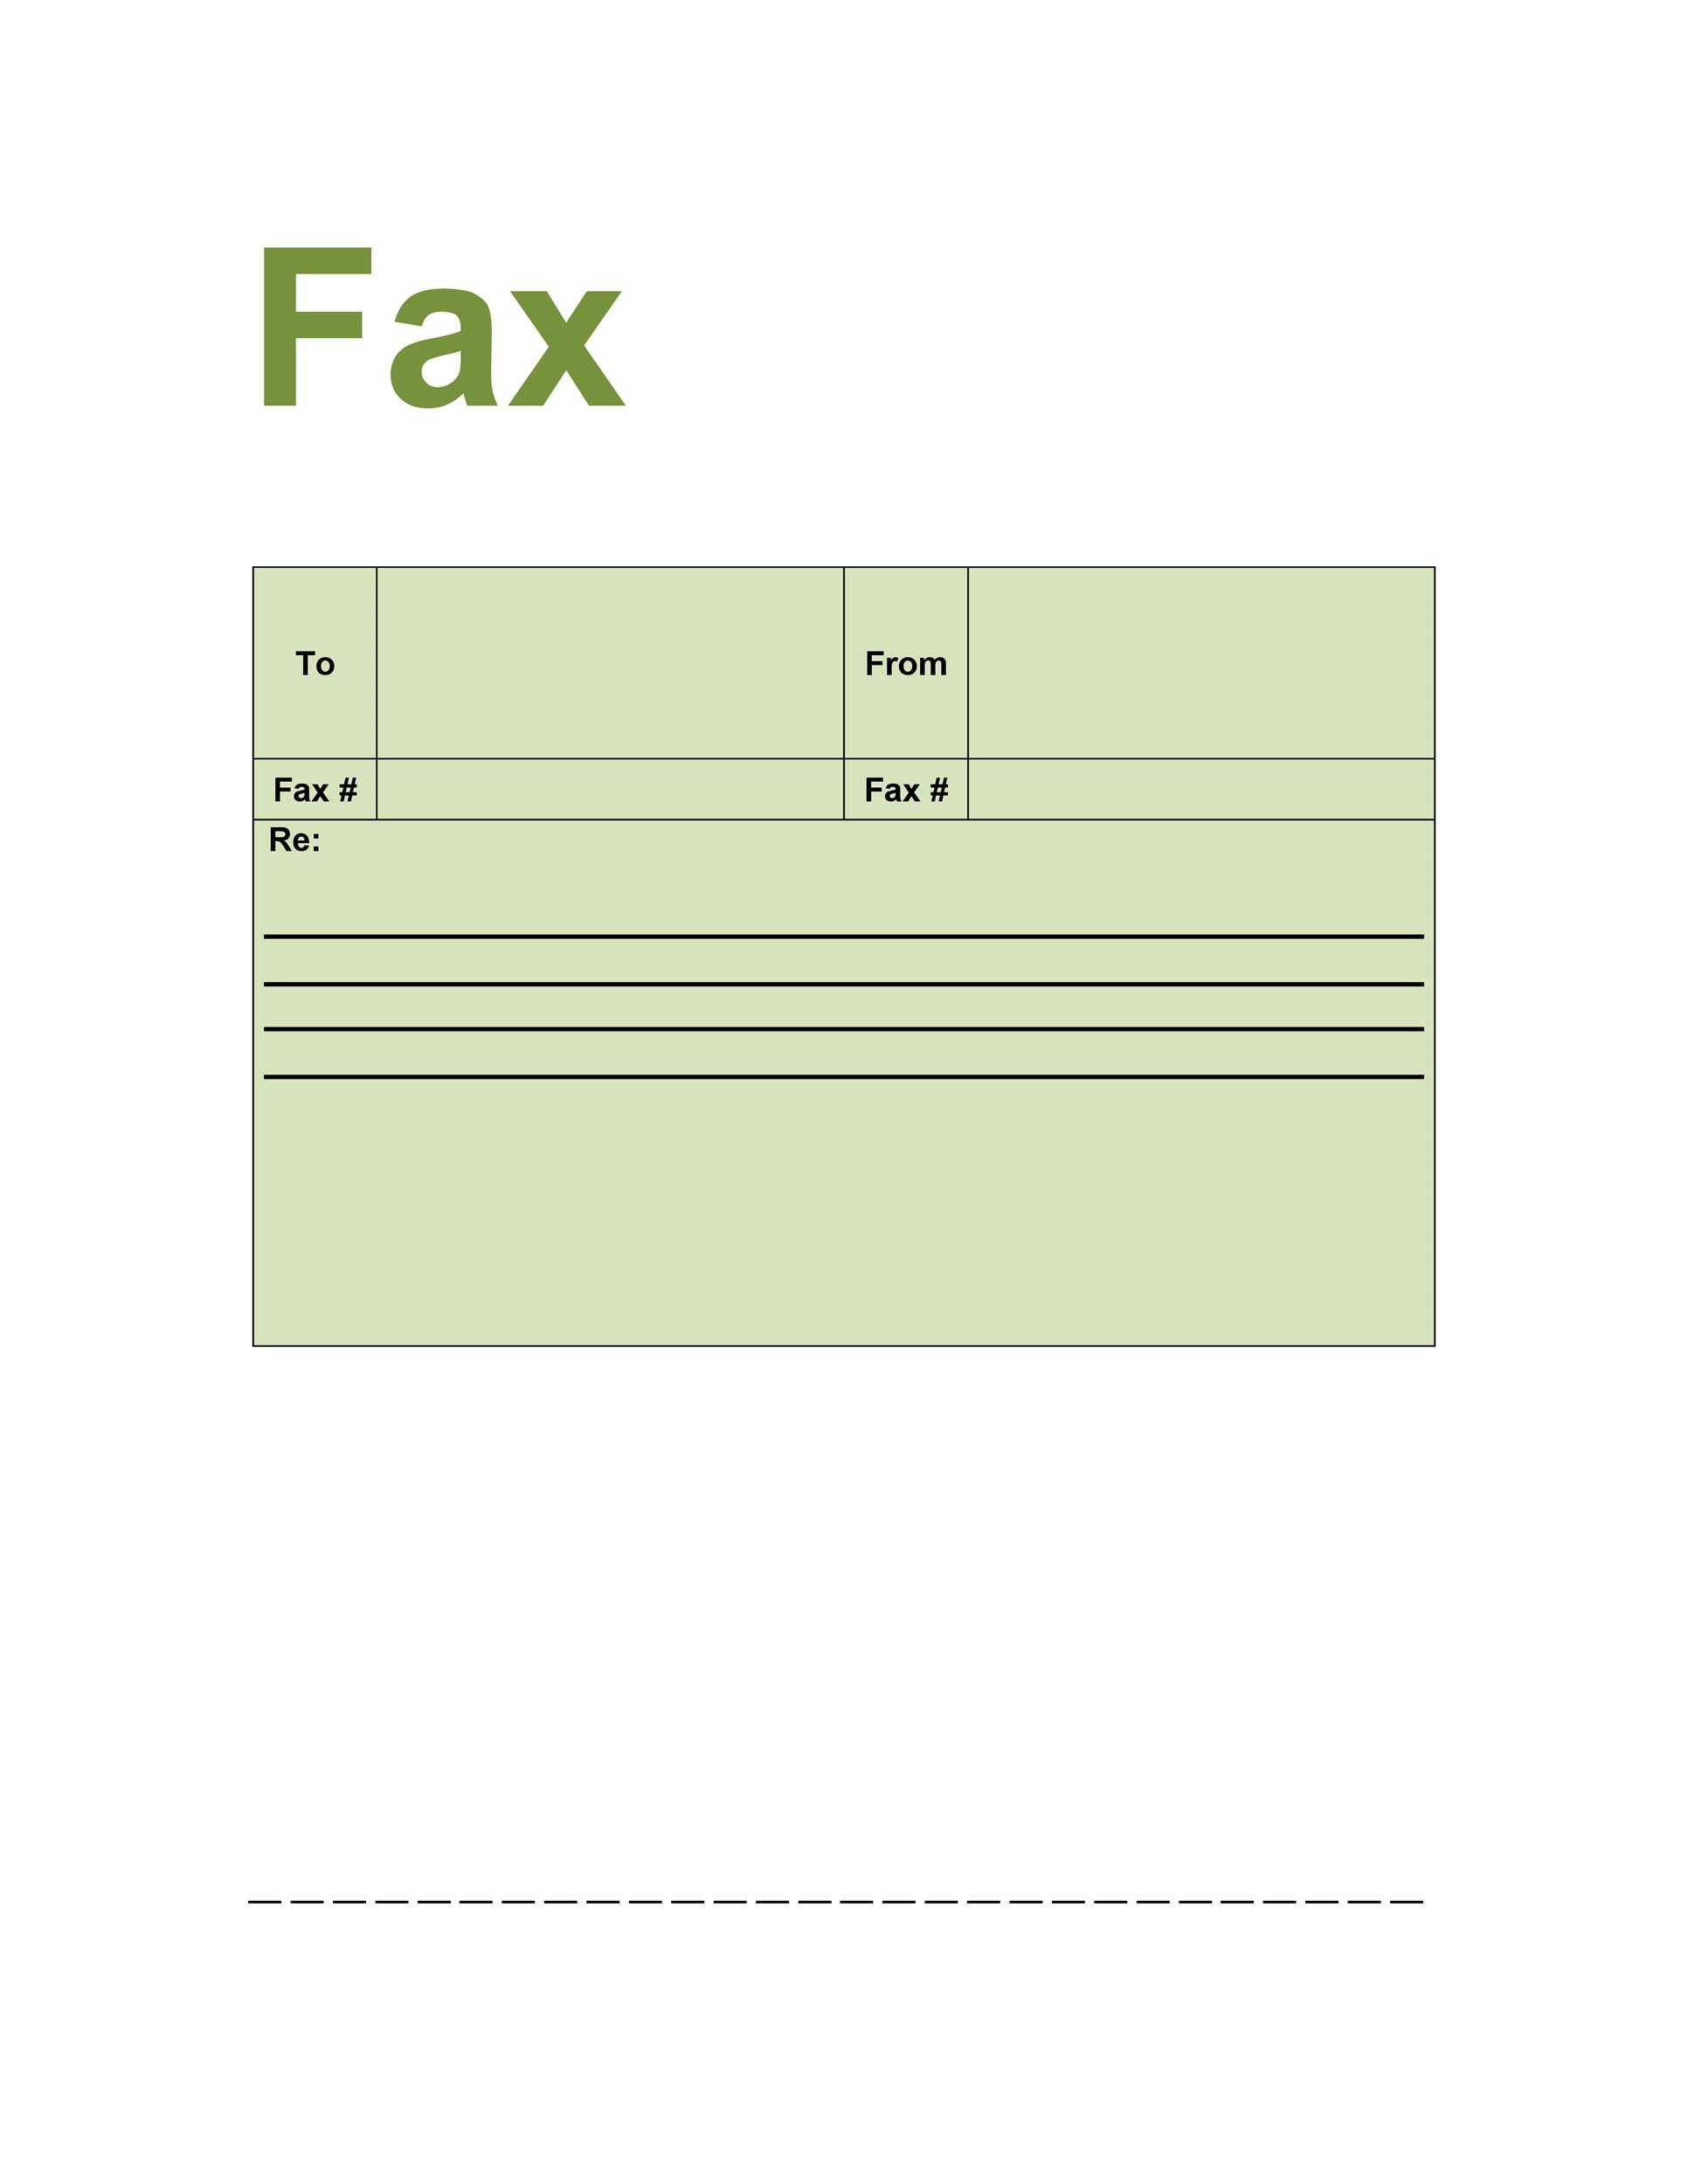 40 Printable Fax Cover Sheet Templates - Template Lab - printable fax cover page